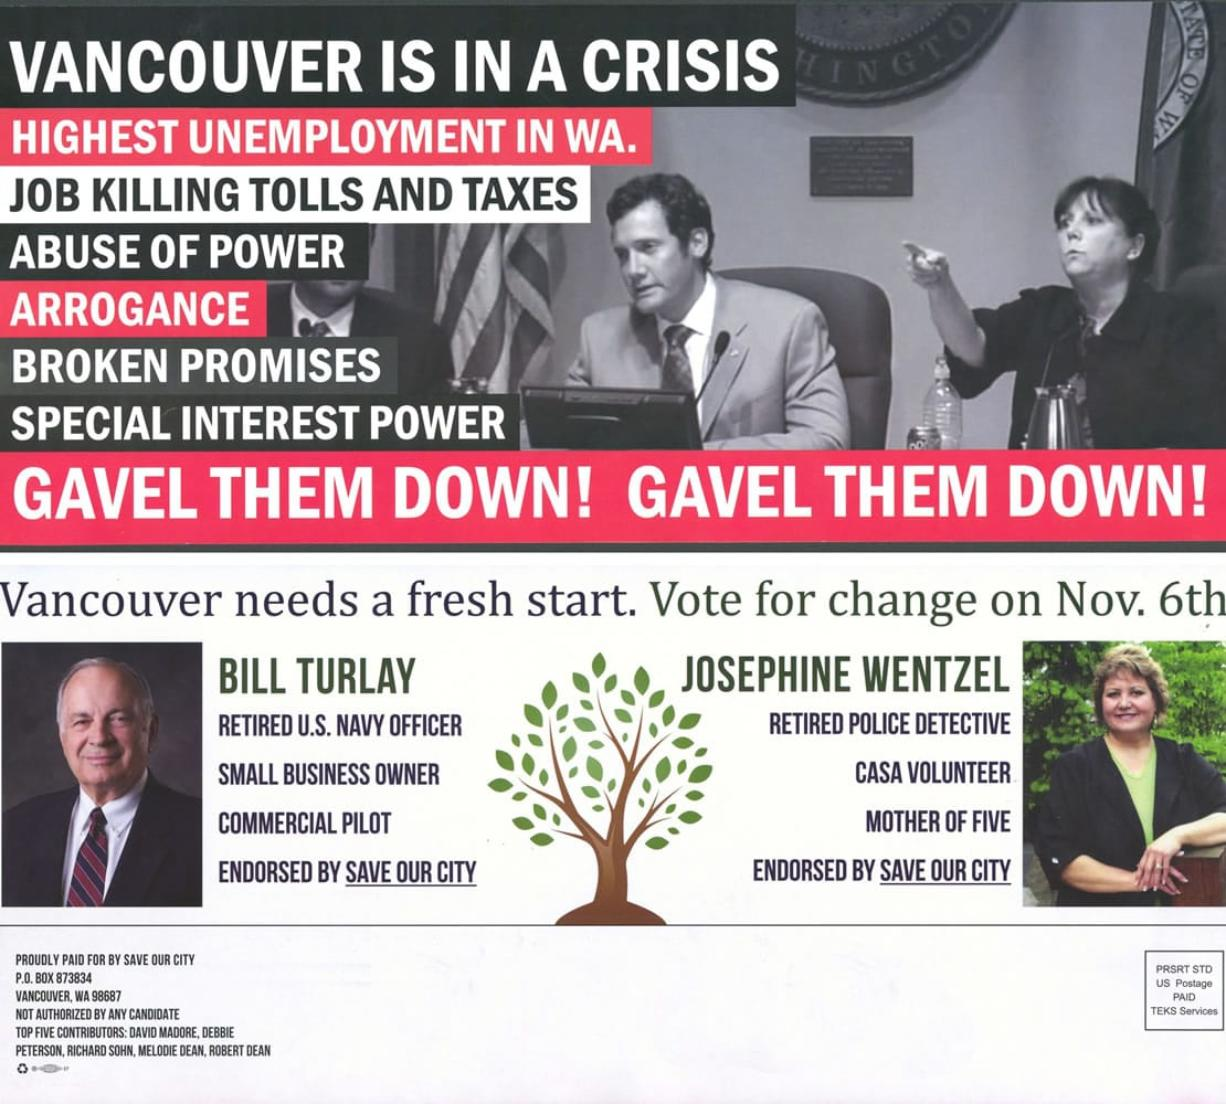 Top: Vancouver residents have received this flier, picturing Mayor Tim Leavitt and Councilor Jeanne Harris, neither of whom are up for election this year.